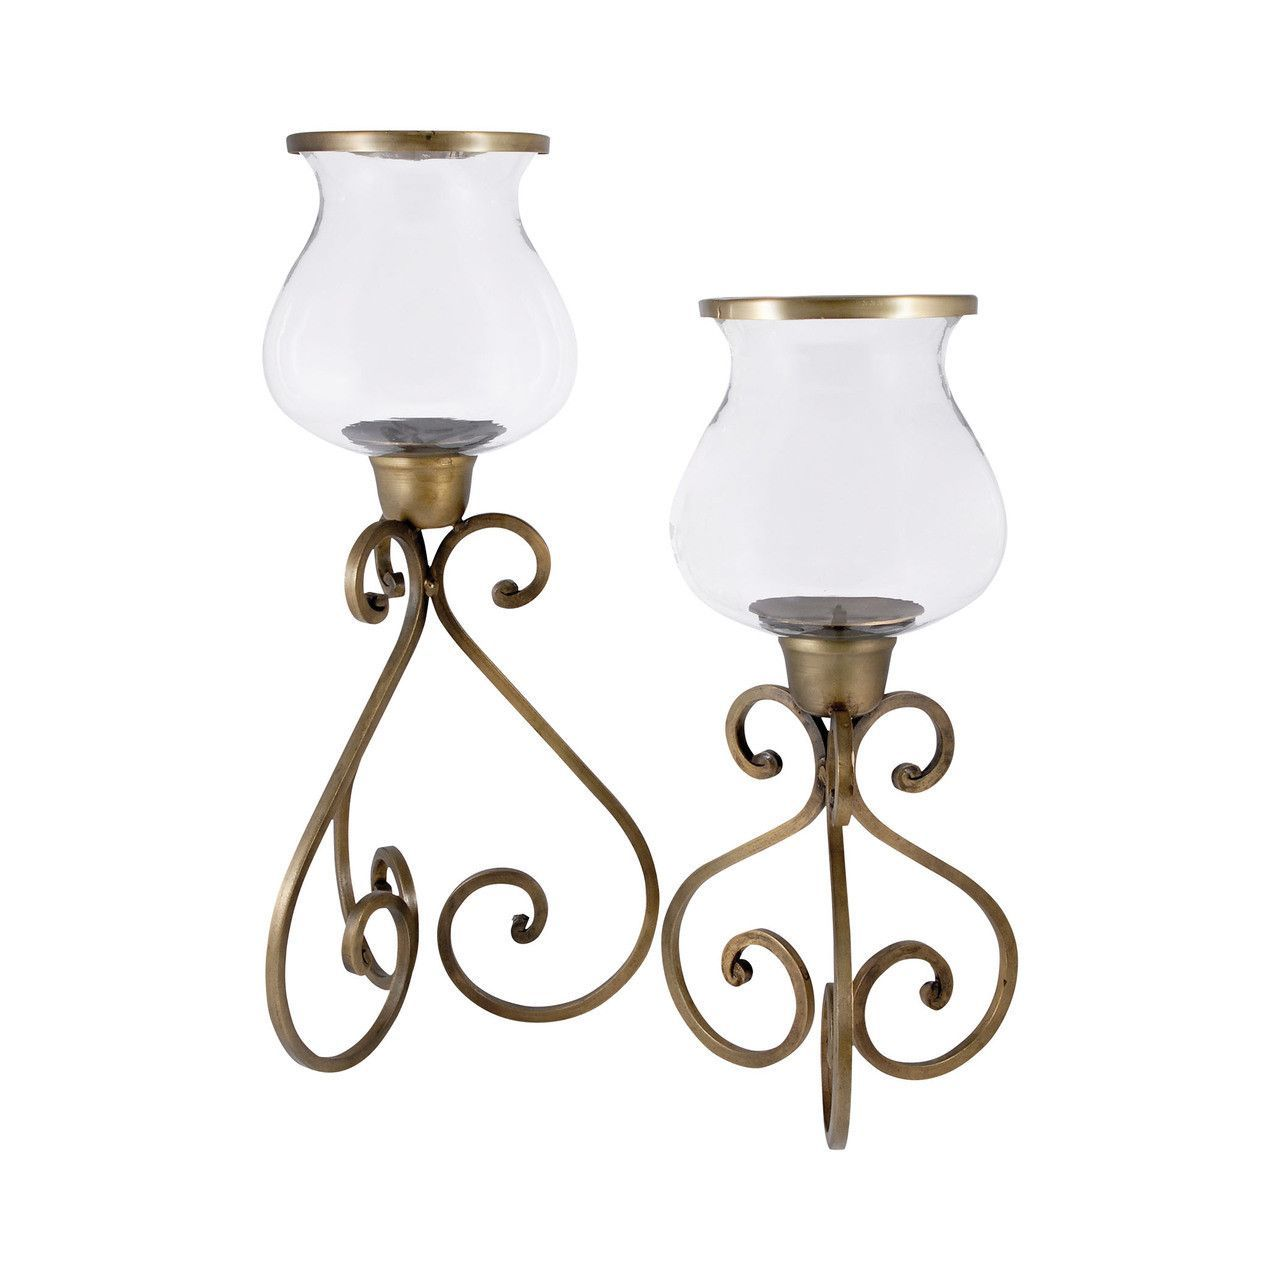 Pomeroy Quartier Set of 2 Lighting